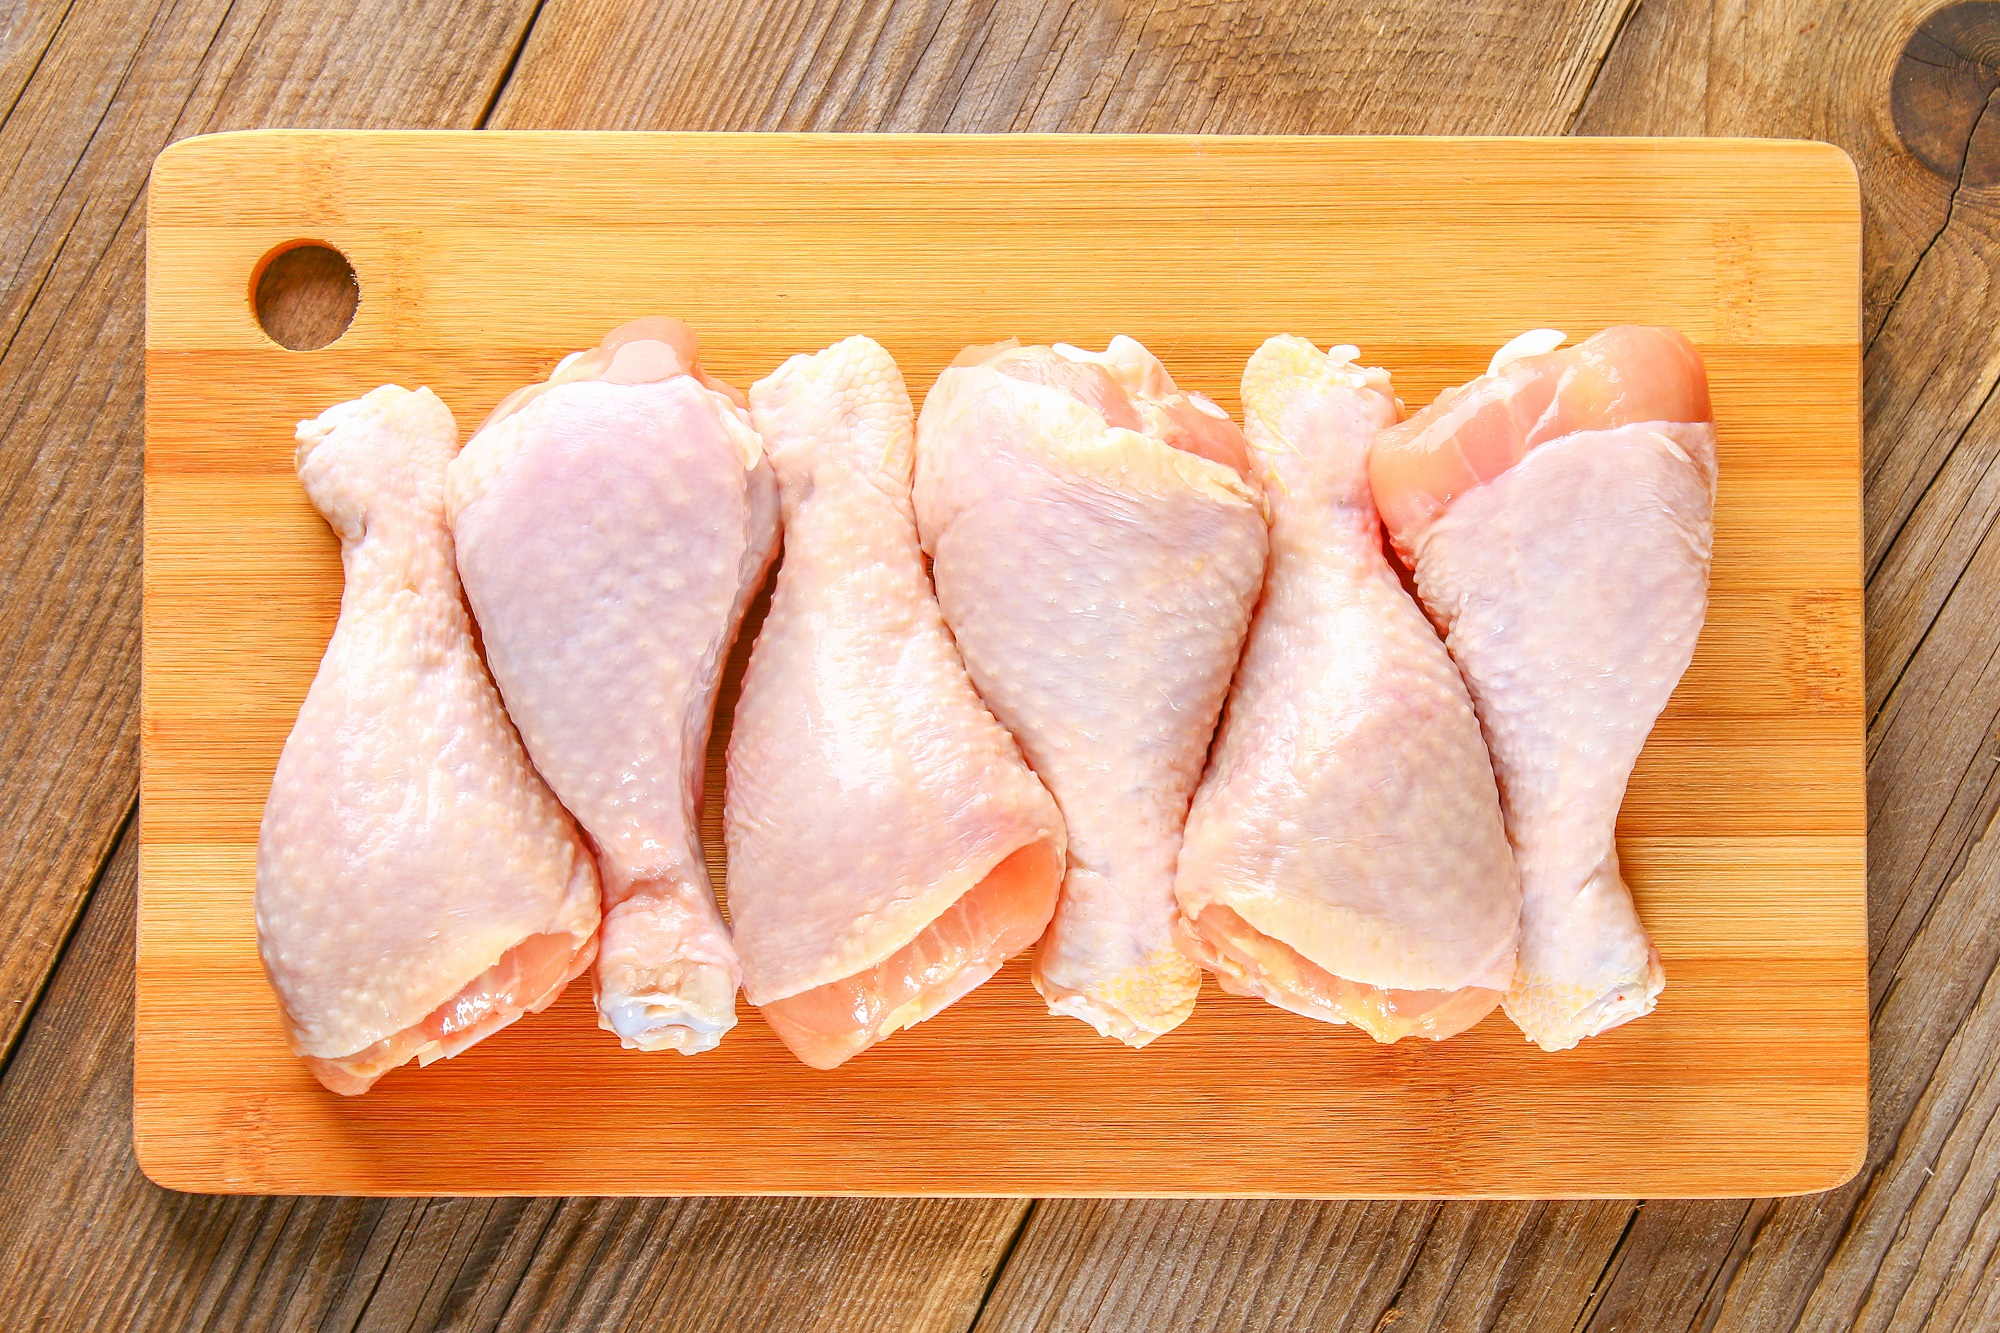 The USDA Just Recalled 32,000 Pounds of Chicken—Here's What You Need to Know